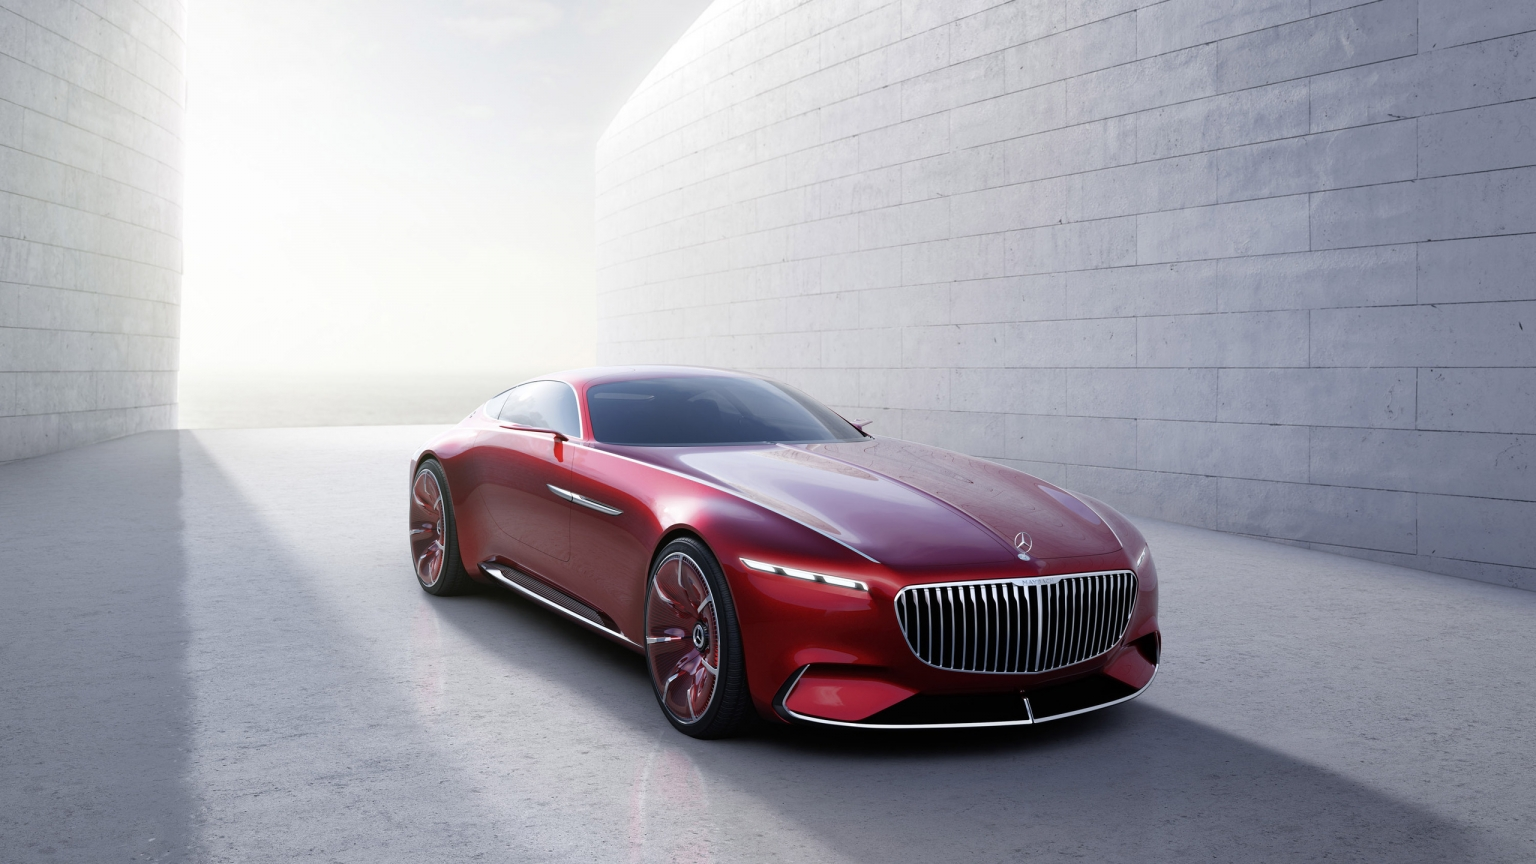 Maybach 6 2016 Concept Car for 1536 x 864 HDTV resolution